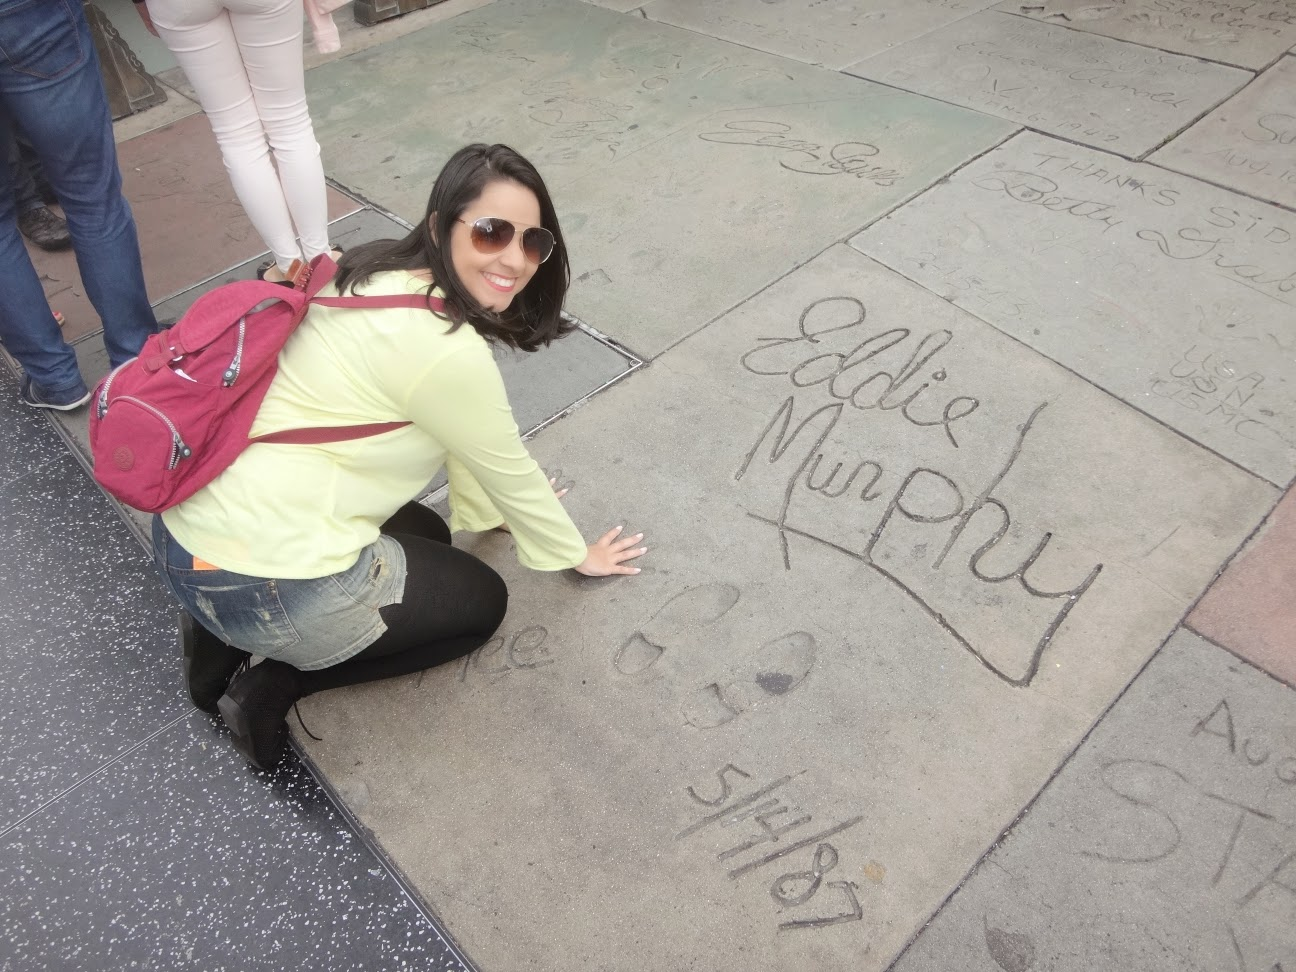 eddie murphy - chinese theater - calçada da fama - hollywood - los angeles - california